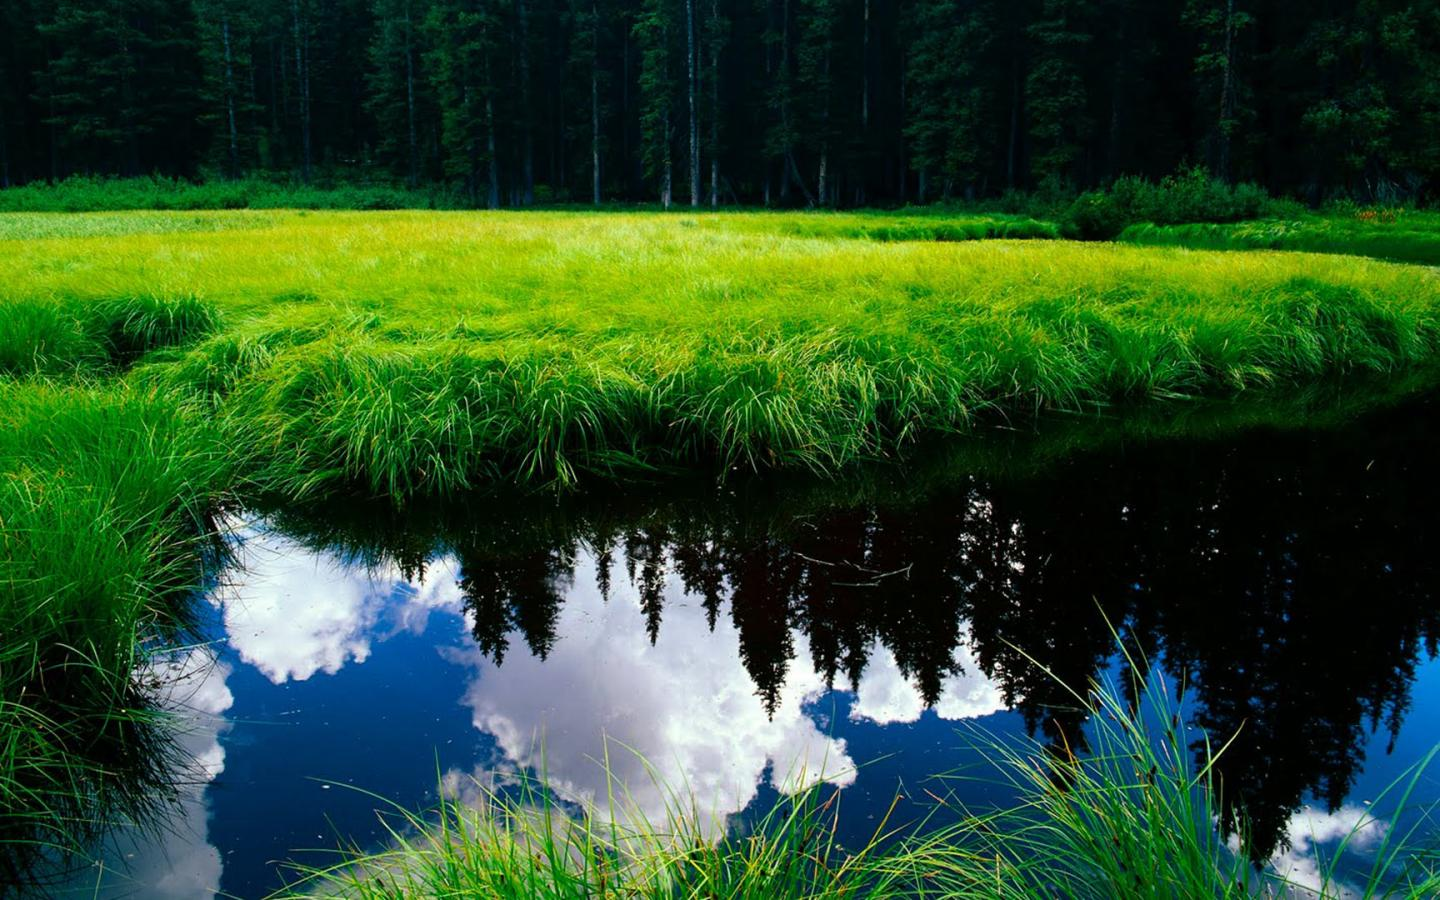 Wallpaper HD Nature 1080p With Green Grass And Clean Water